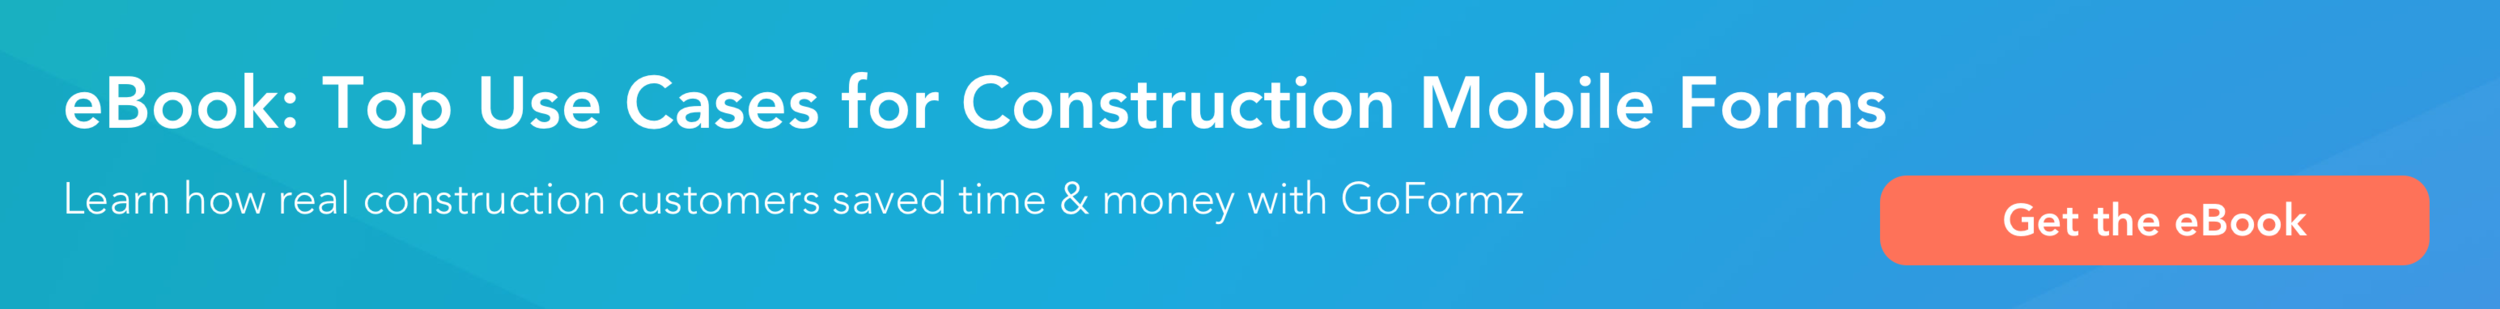 eBook: Top Use Cases for Construction